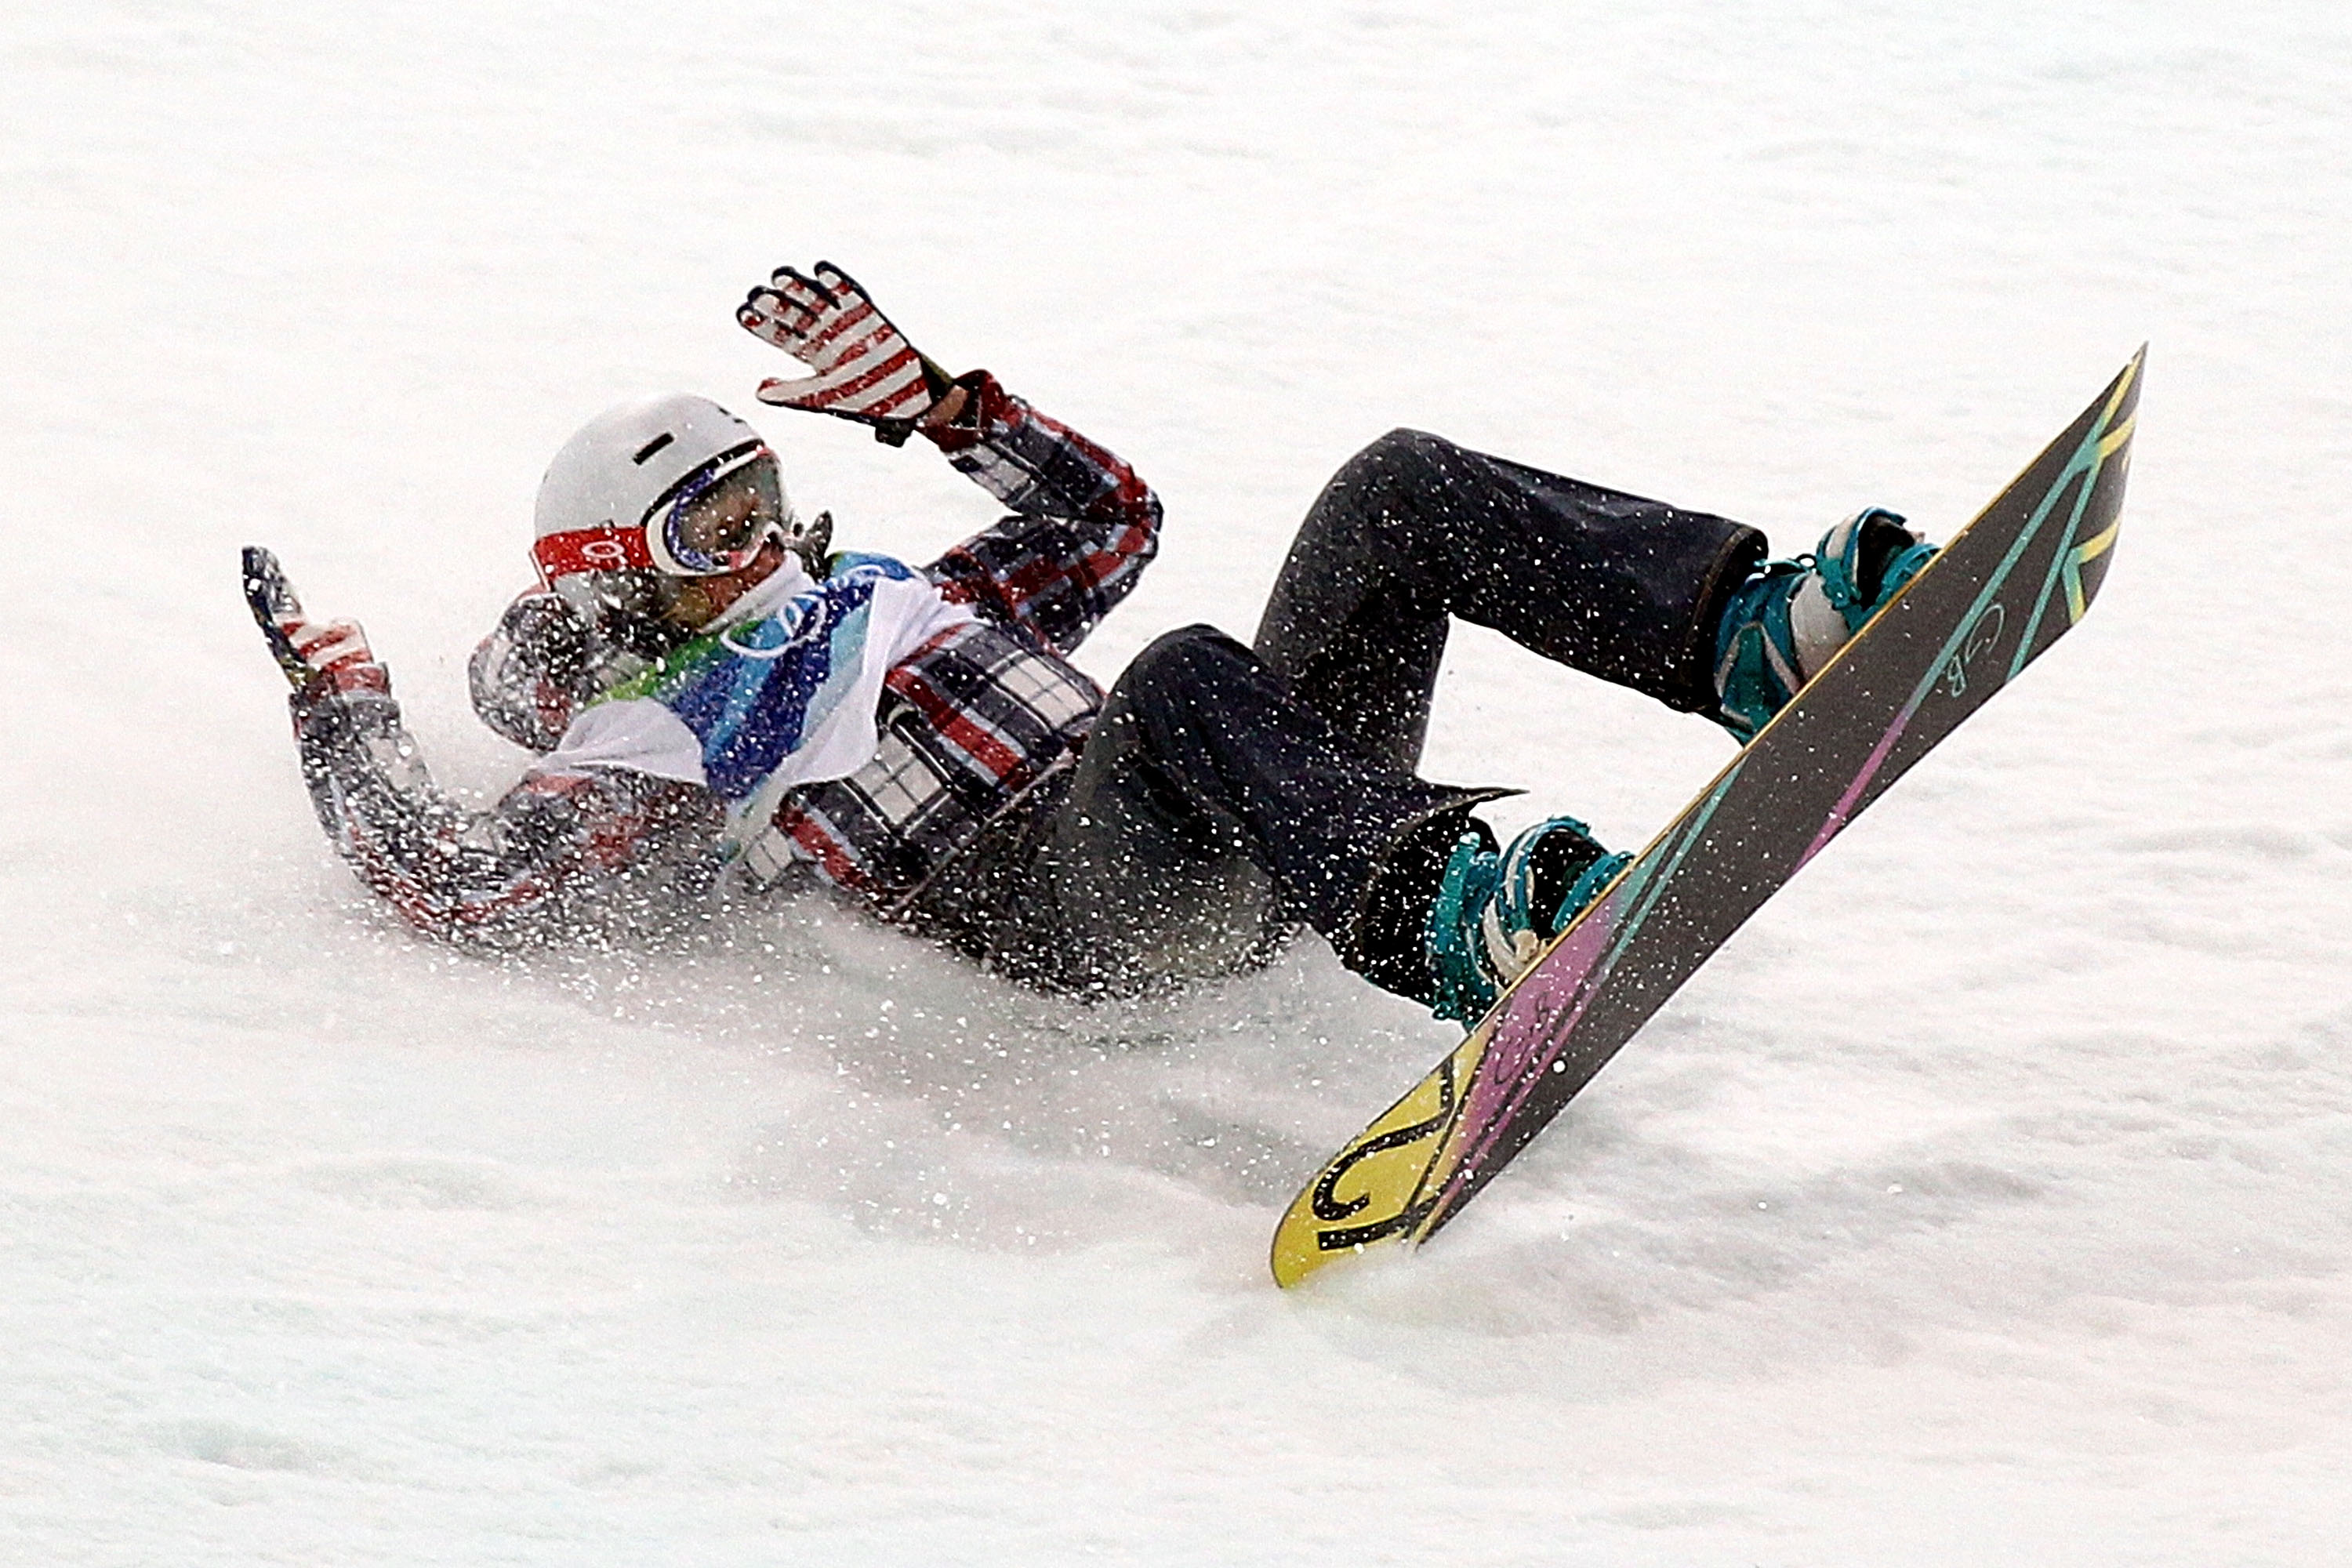 VANCOUVER, BC - FEBRUARY 18:  Gretchen Bleiler of the United States crashes on her second run during the the women's snowboard halfpipe final on day seven of the Vancouver 2010 Winter Olympics at Cypress Snowboard & Ski-Cross Stadium on February 18, 2010